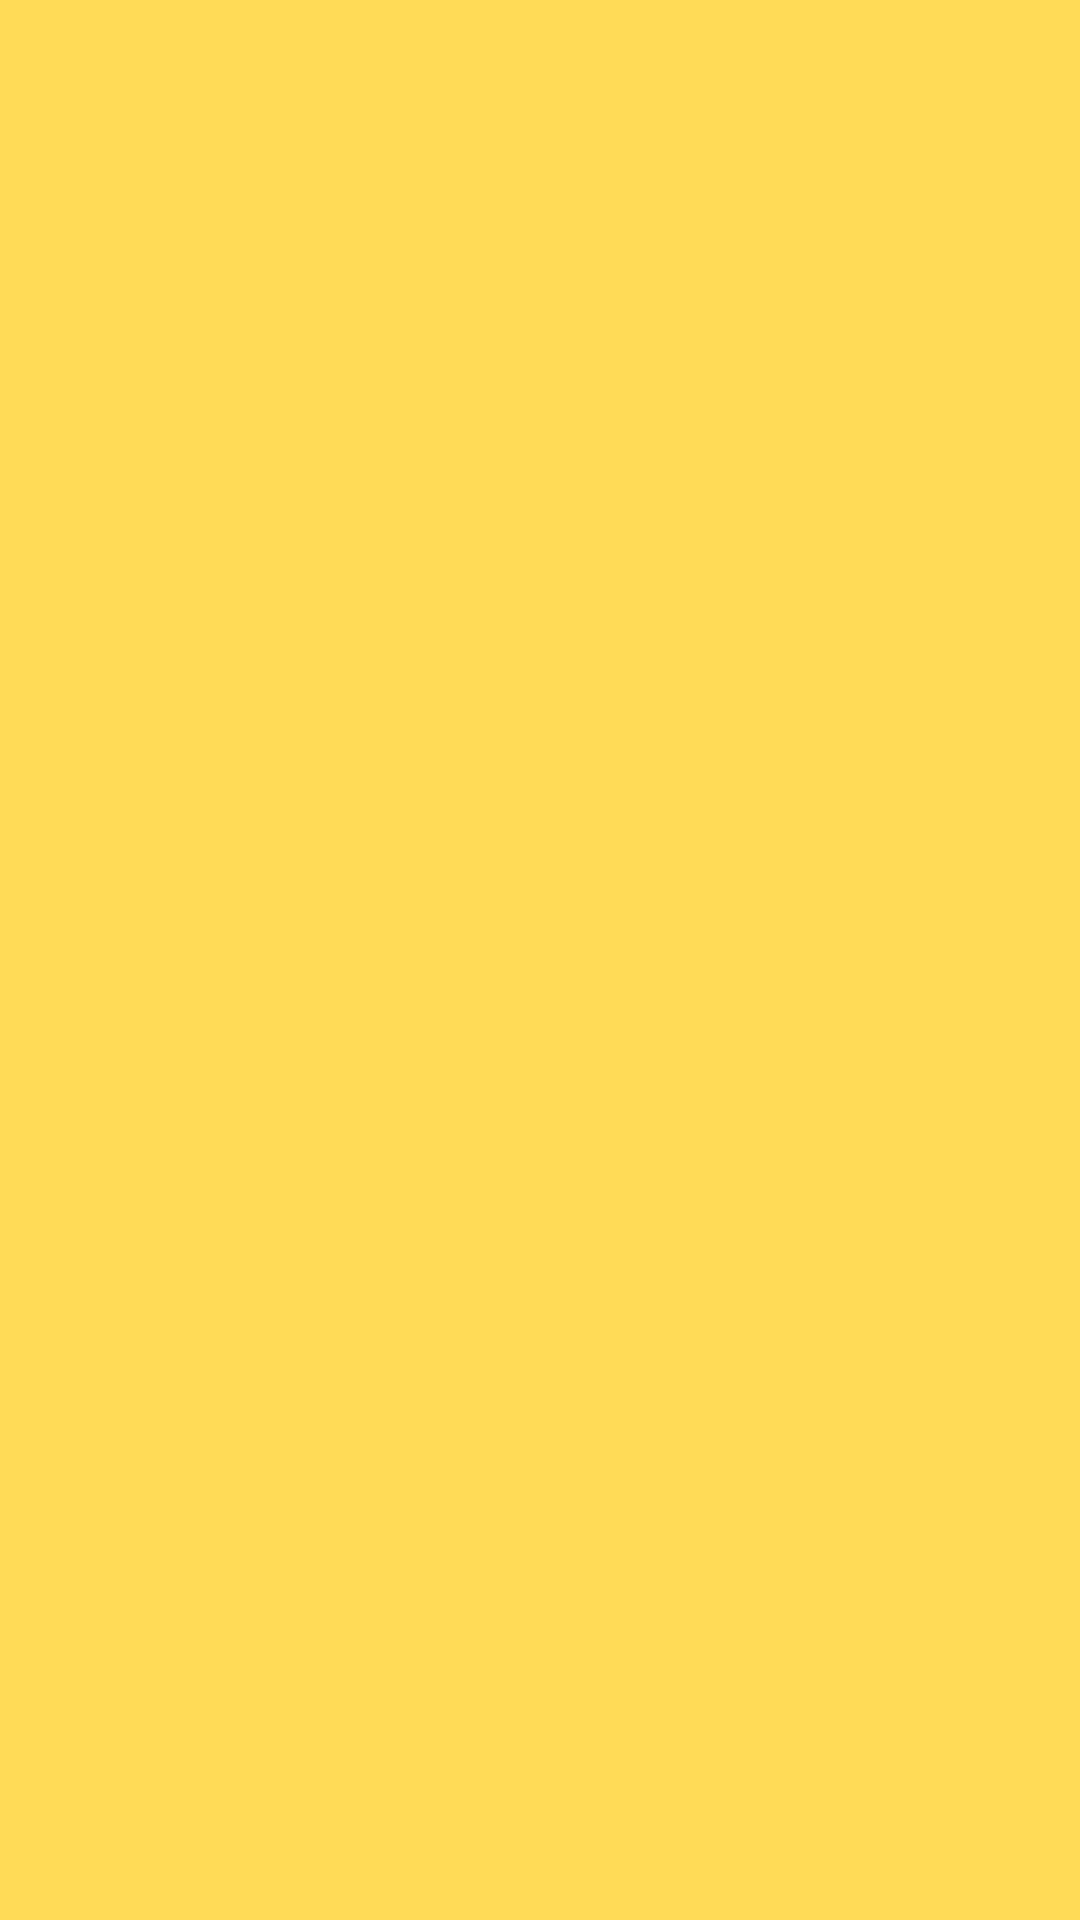 1080x1920 Mustard Solid Color Background